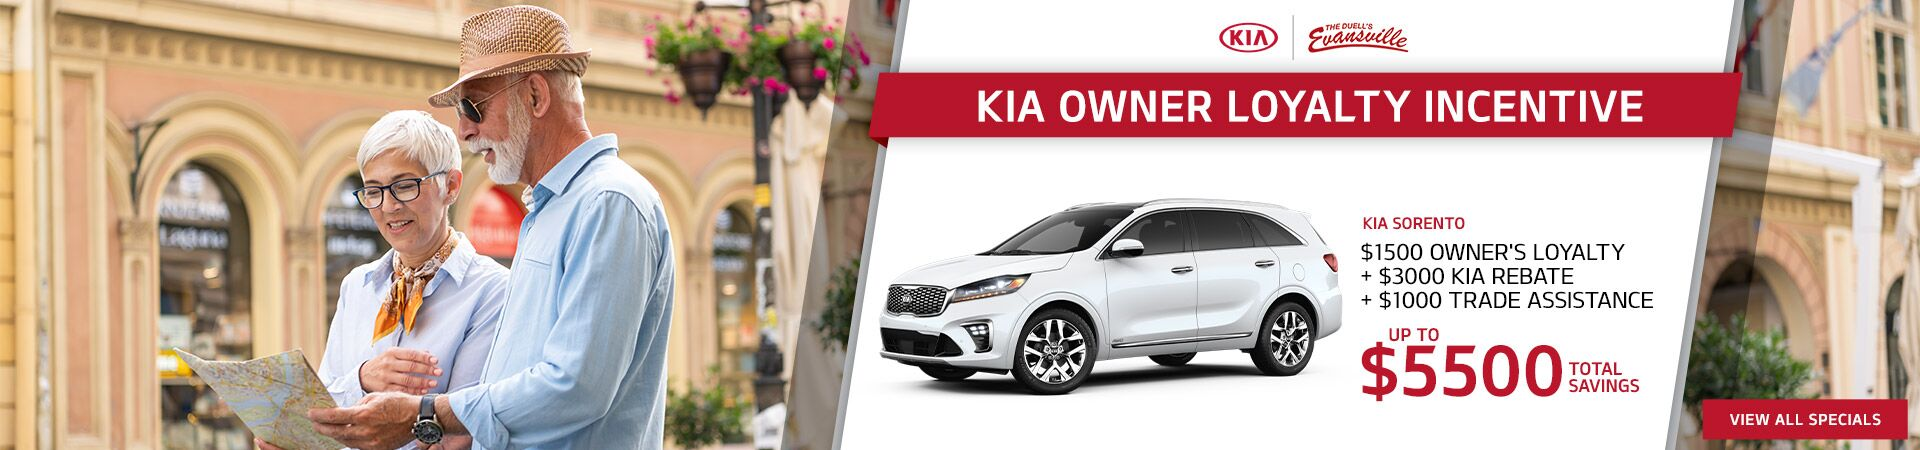 Kia Sorento Owner Loyalty Offer